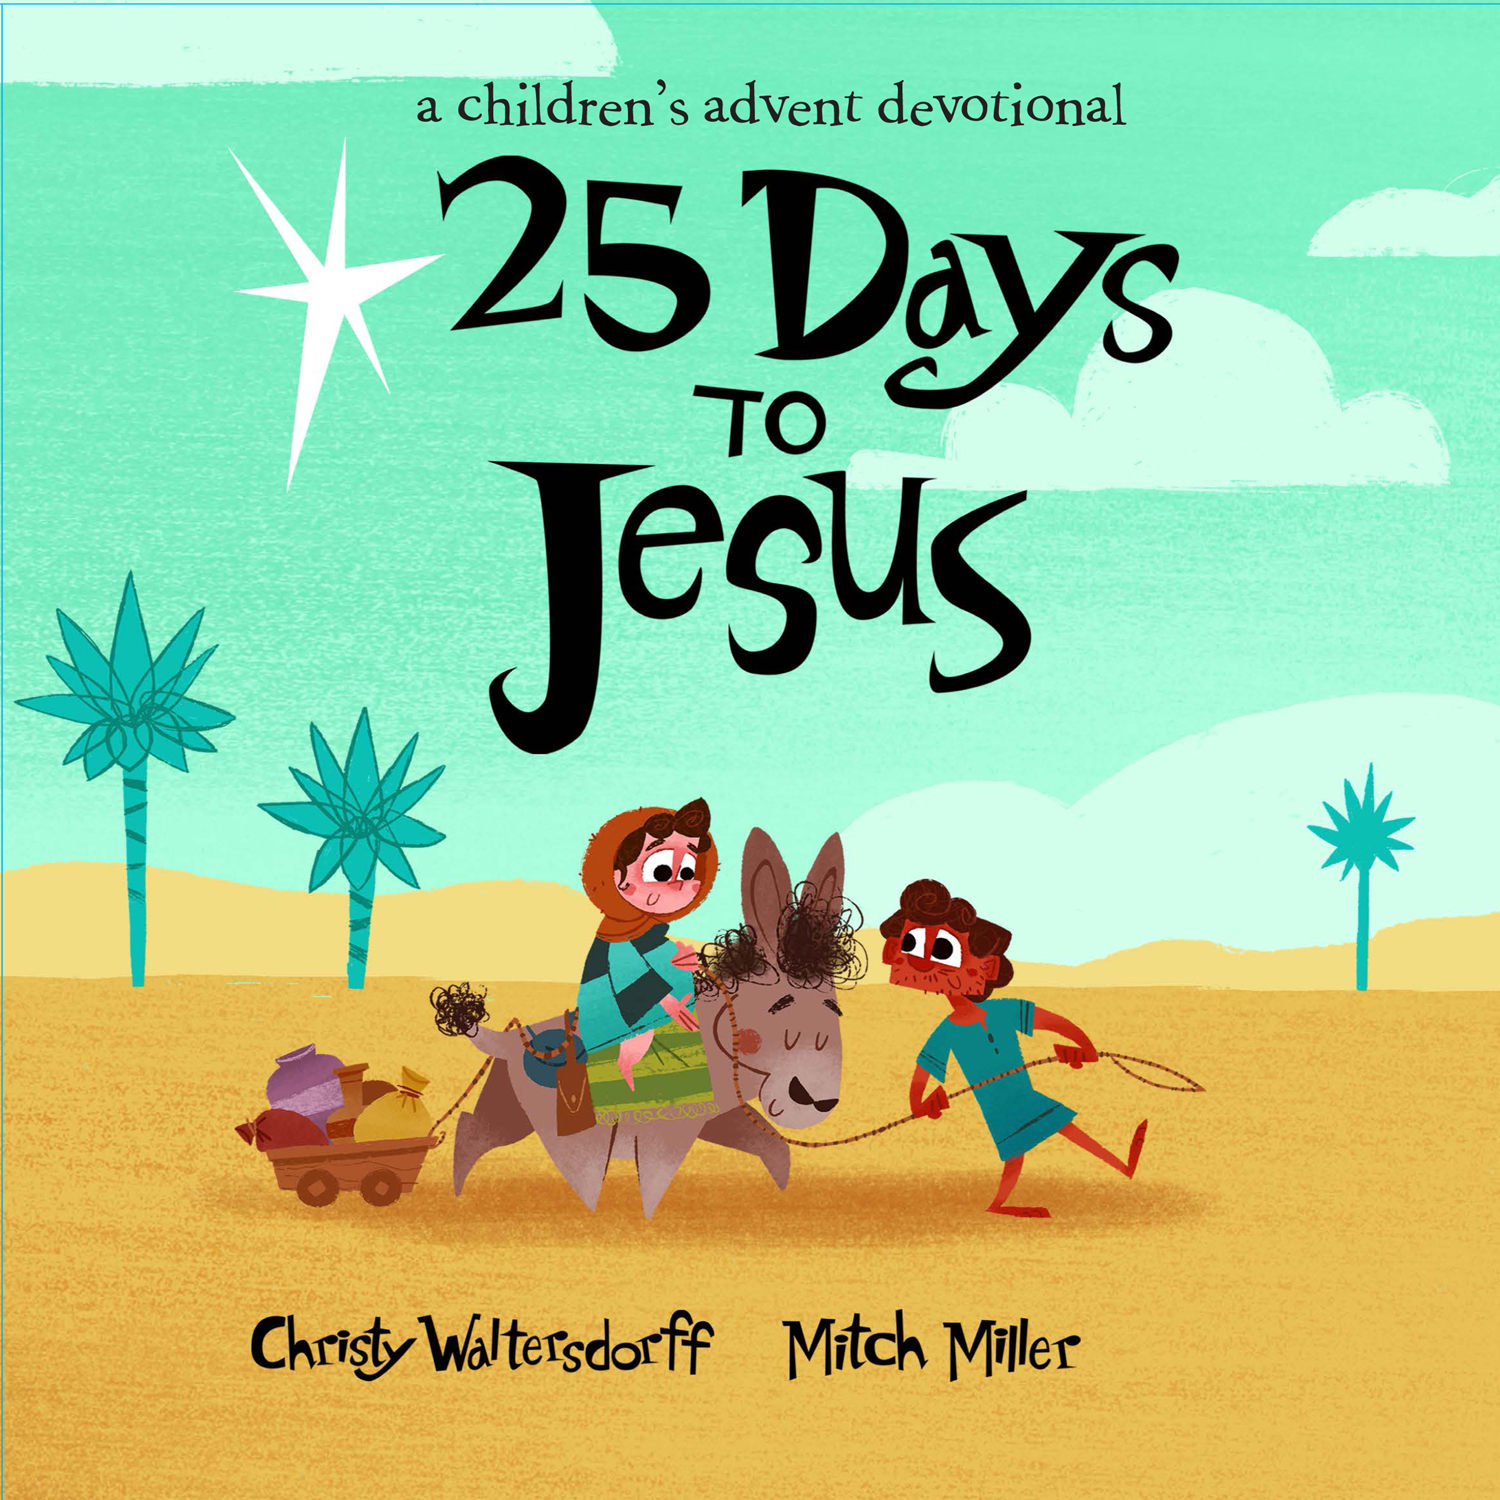 25 Days to Jesus - A Children's Advent Devotional